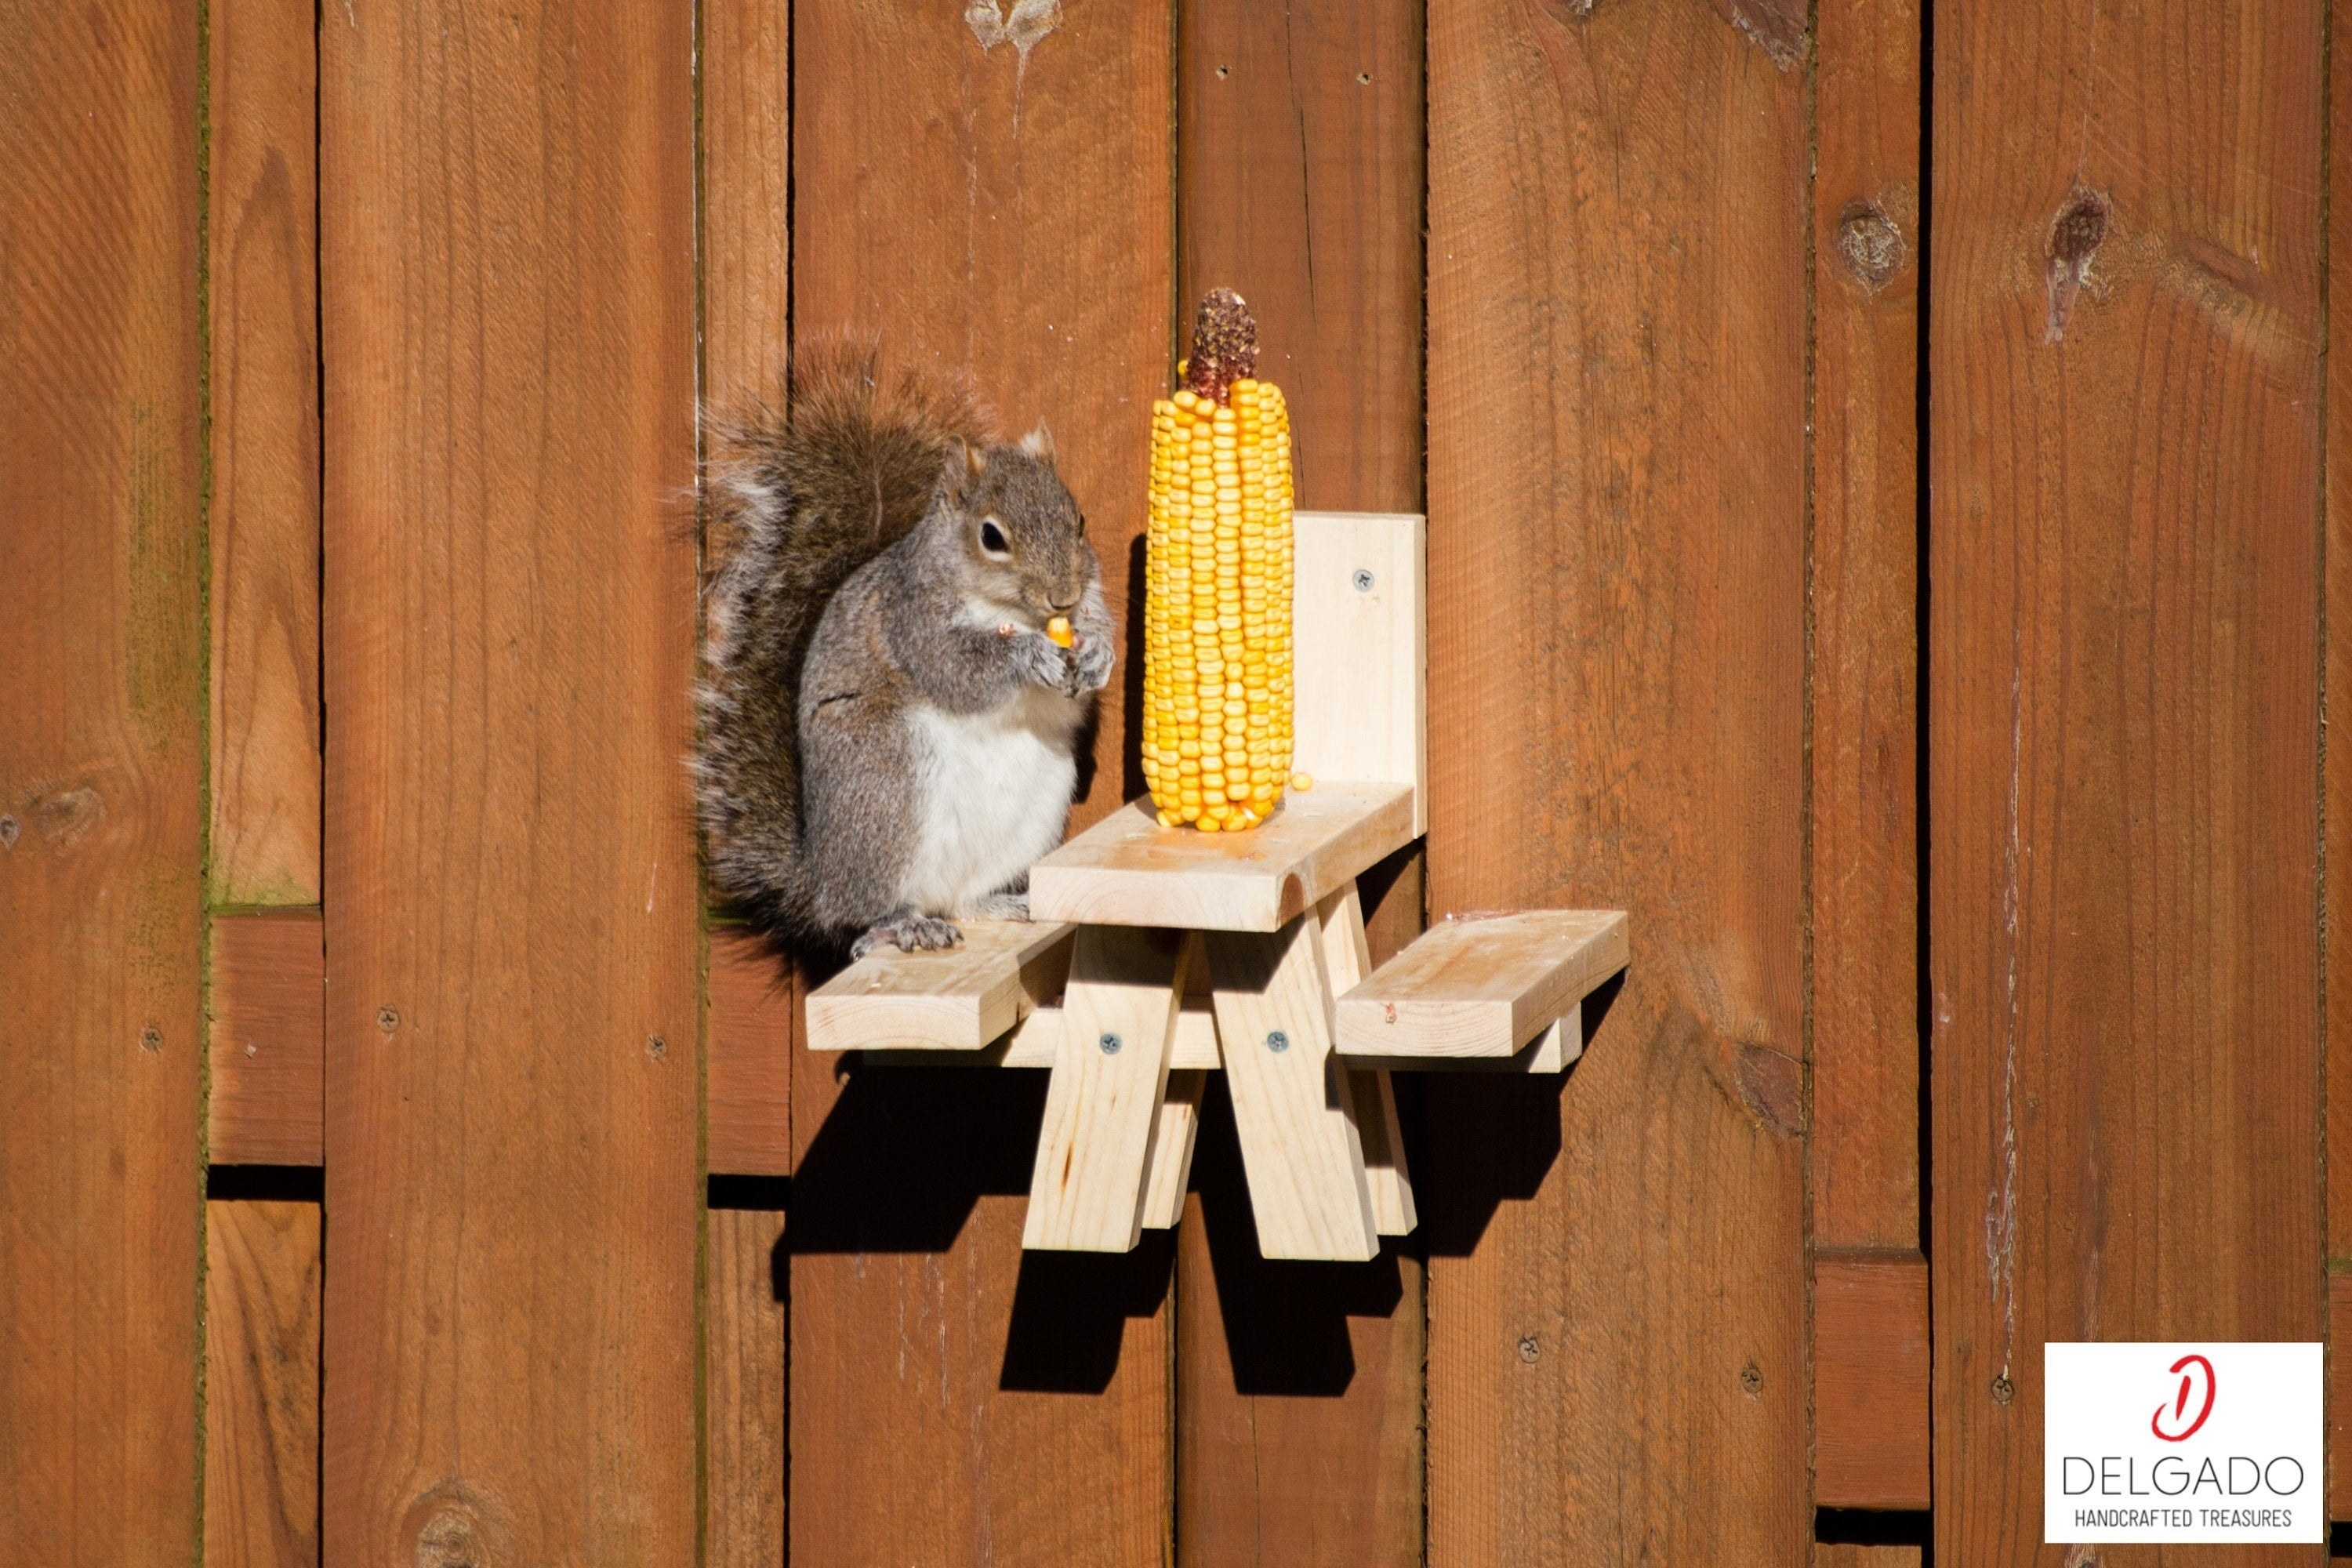 a squirrel nibbling on corn on the cob while standing on a small picnic table that is screwed into a fence